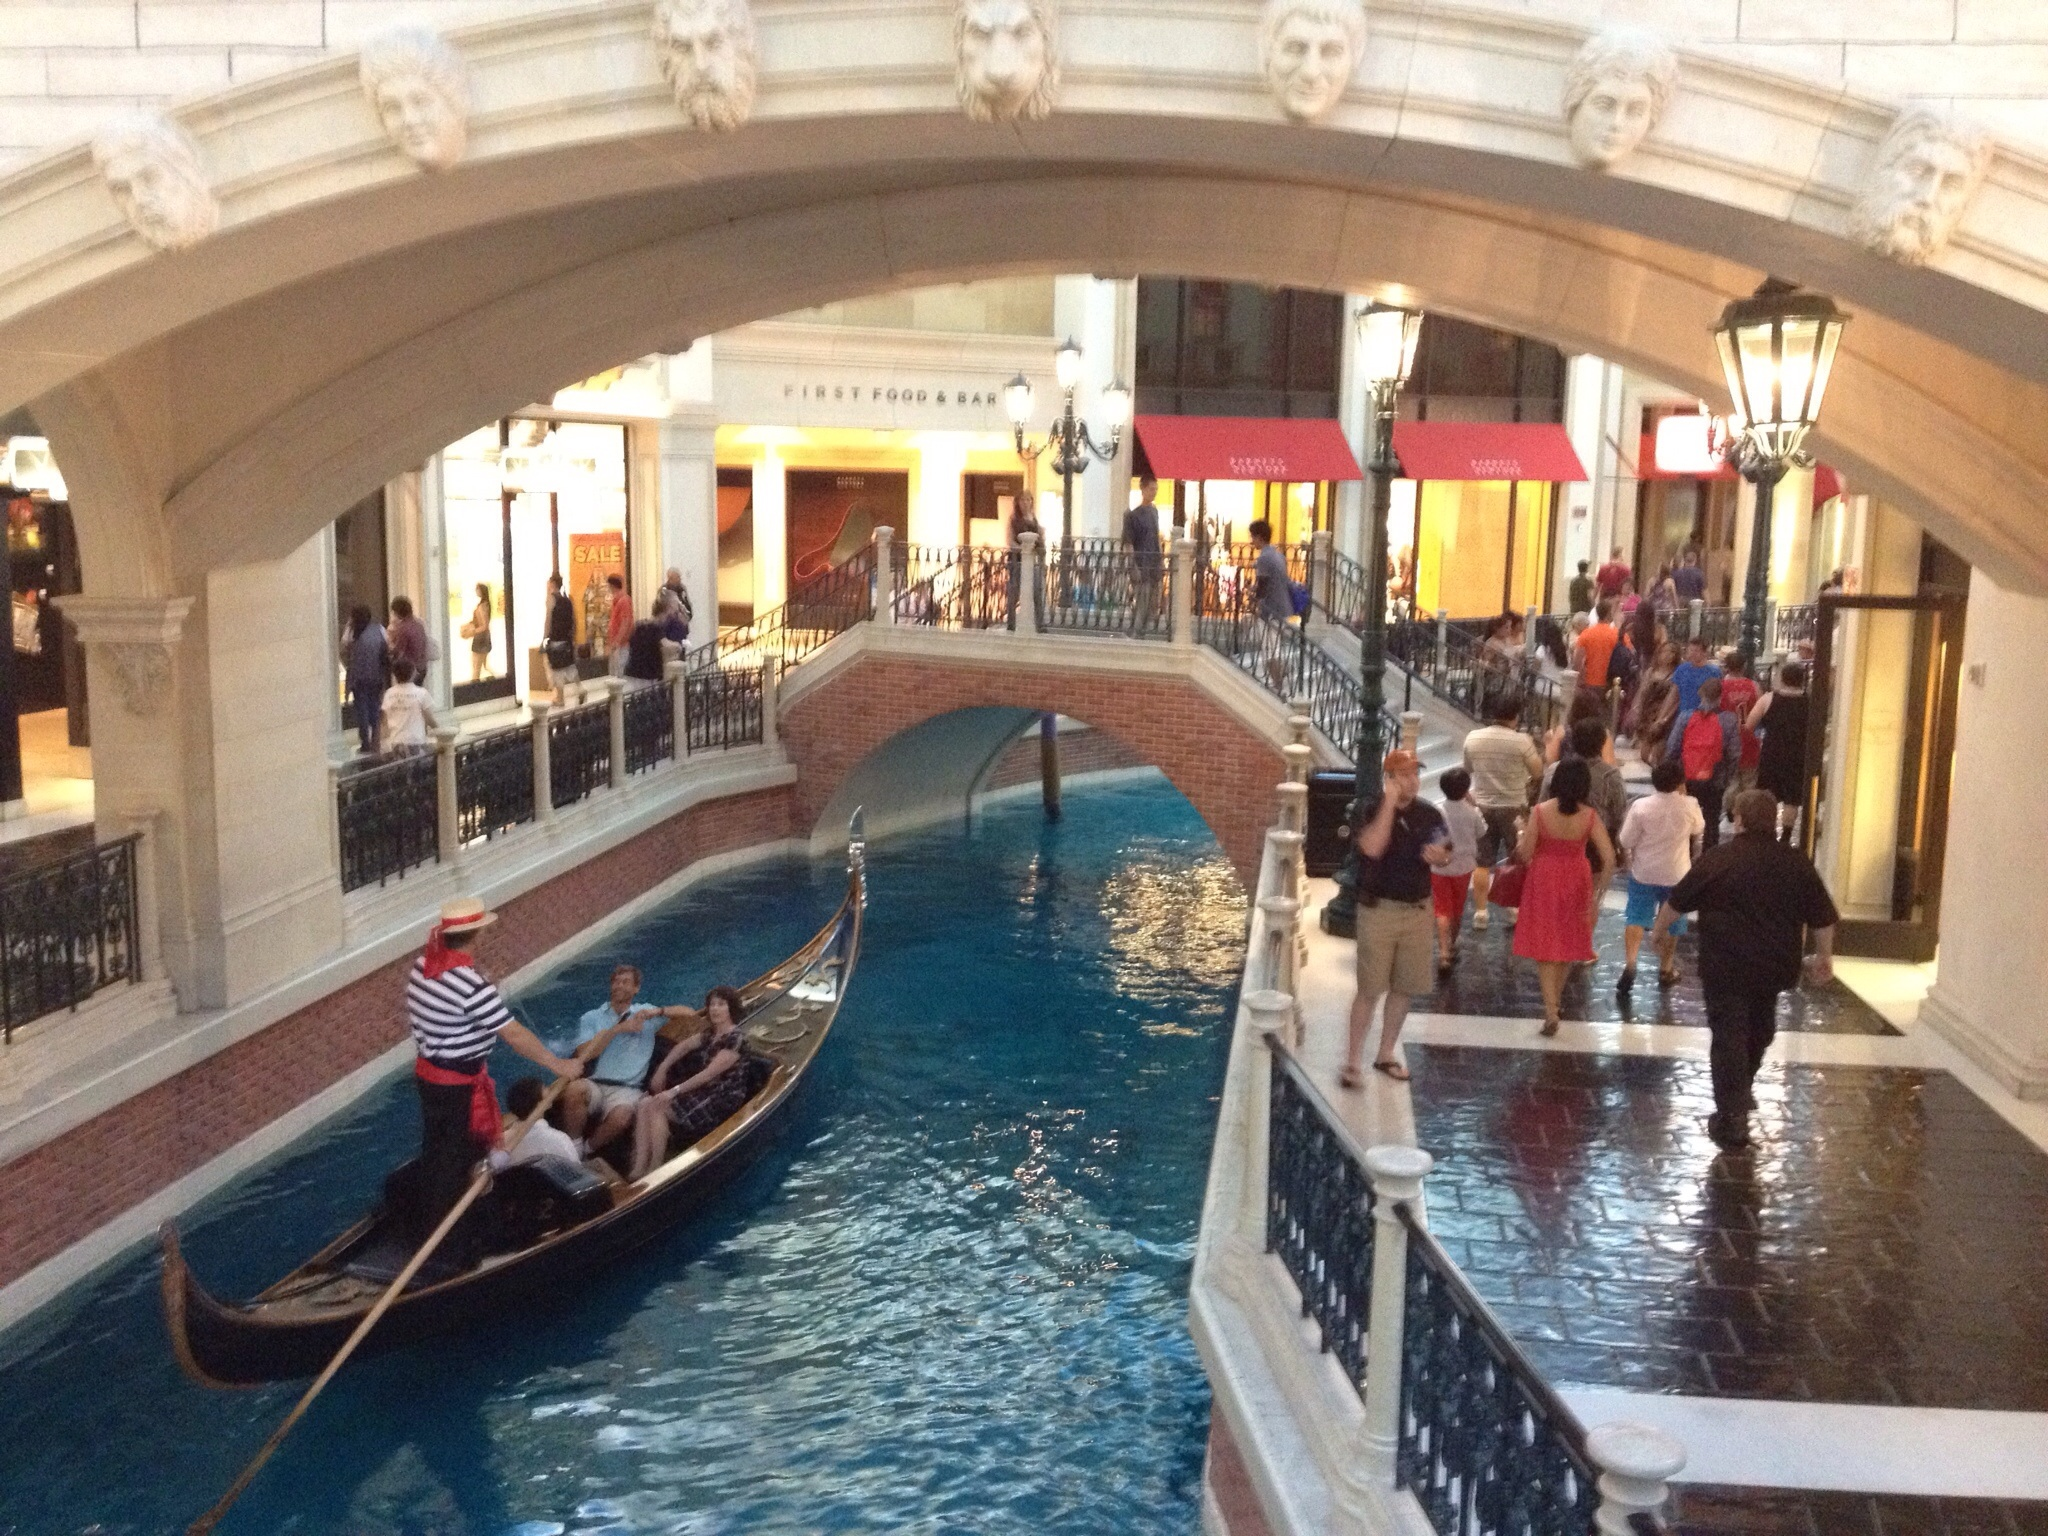 Venice? No the Venetian Casino, because whyever  wouldn't you build an artificial canal in the middle of a desert?